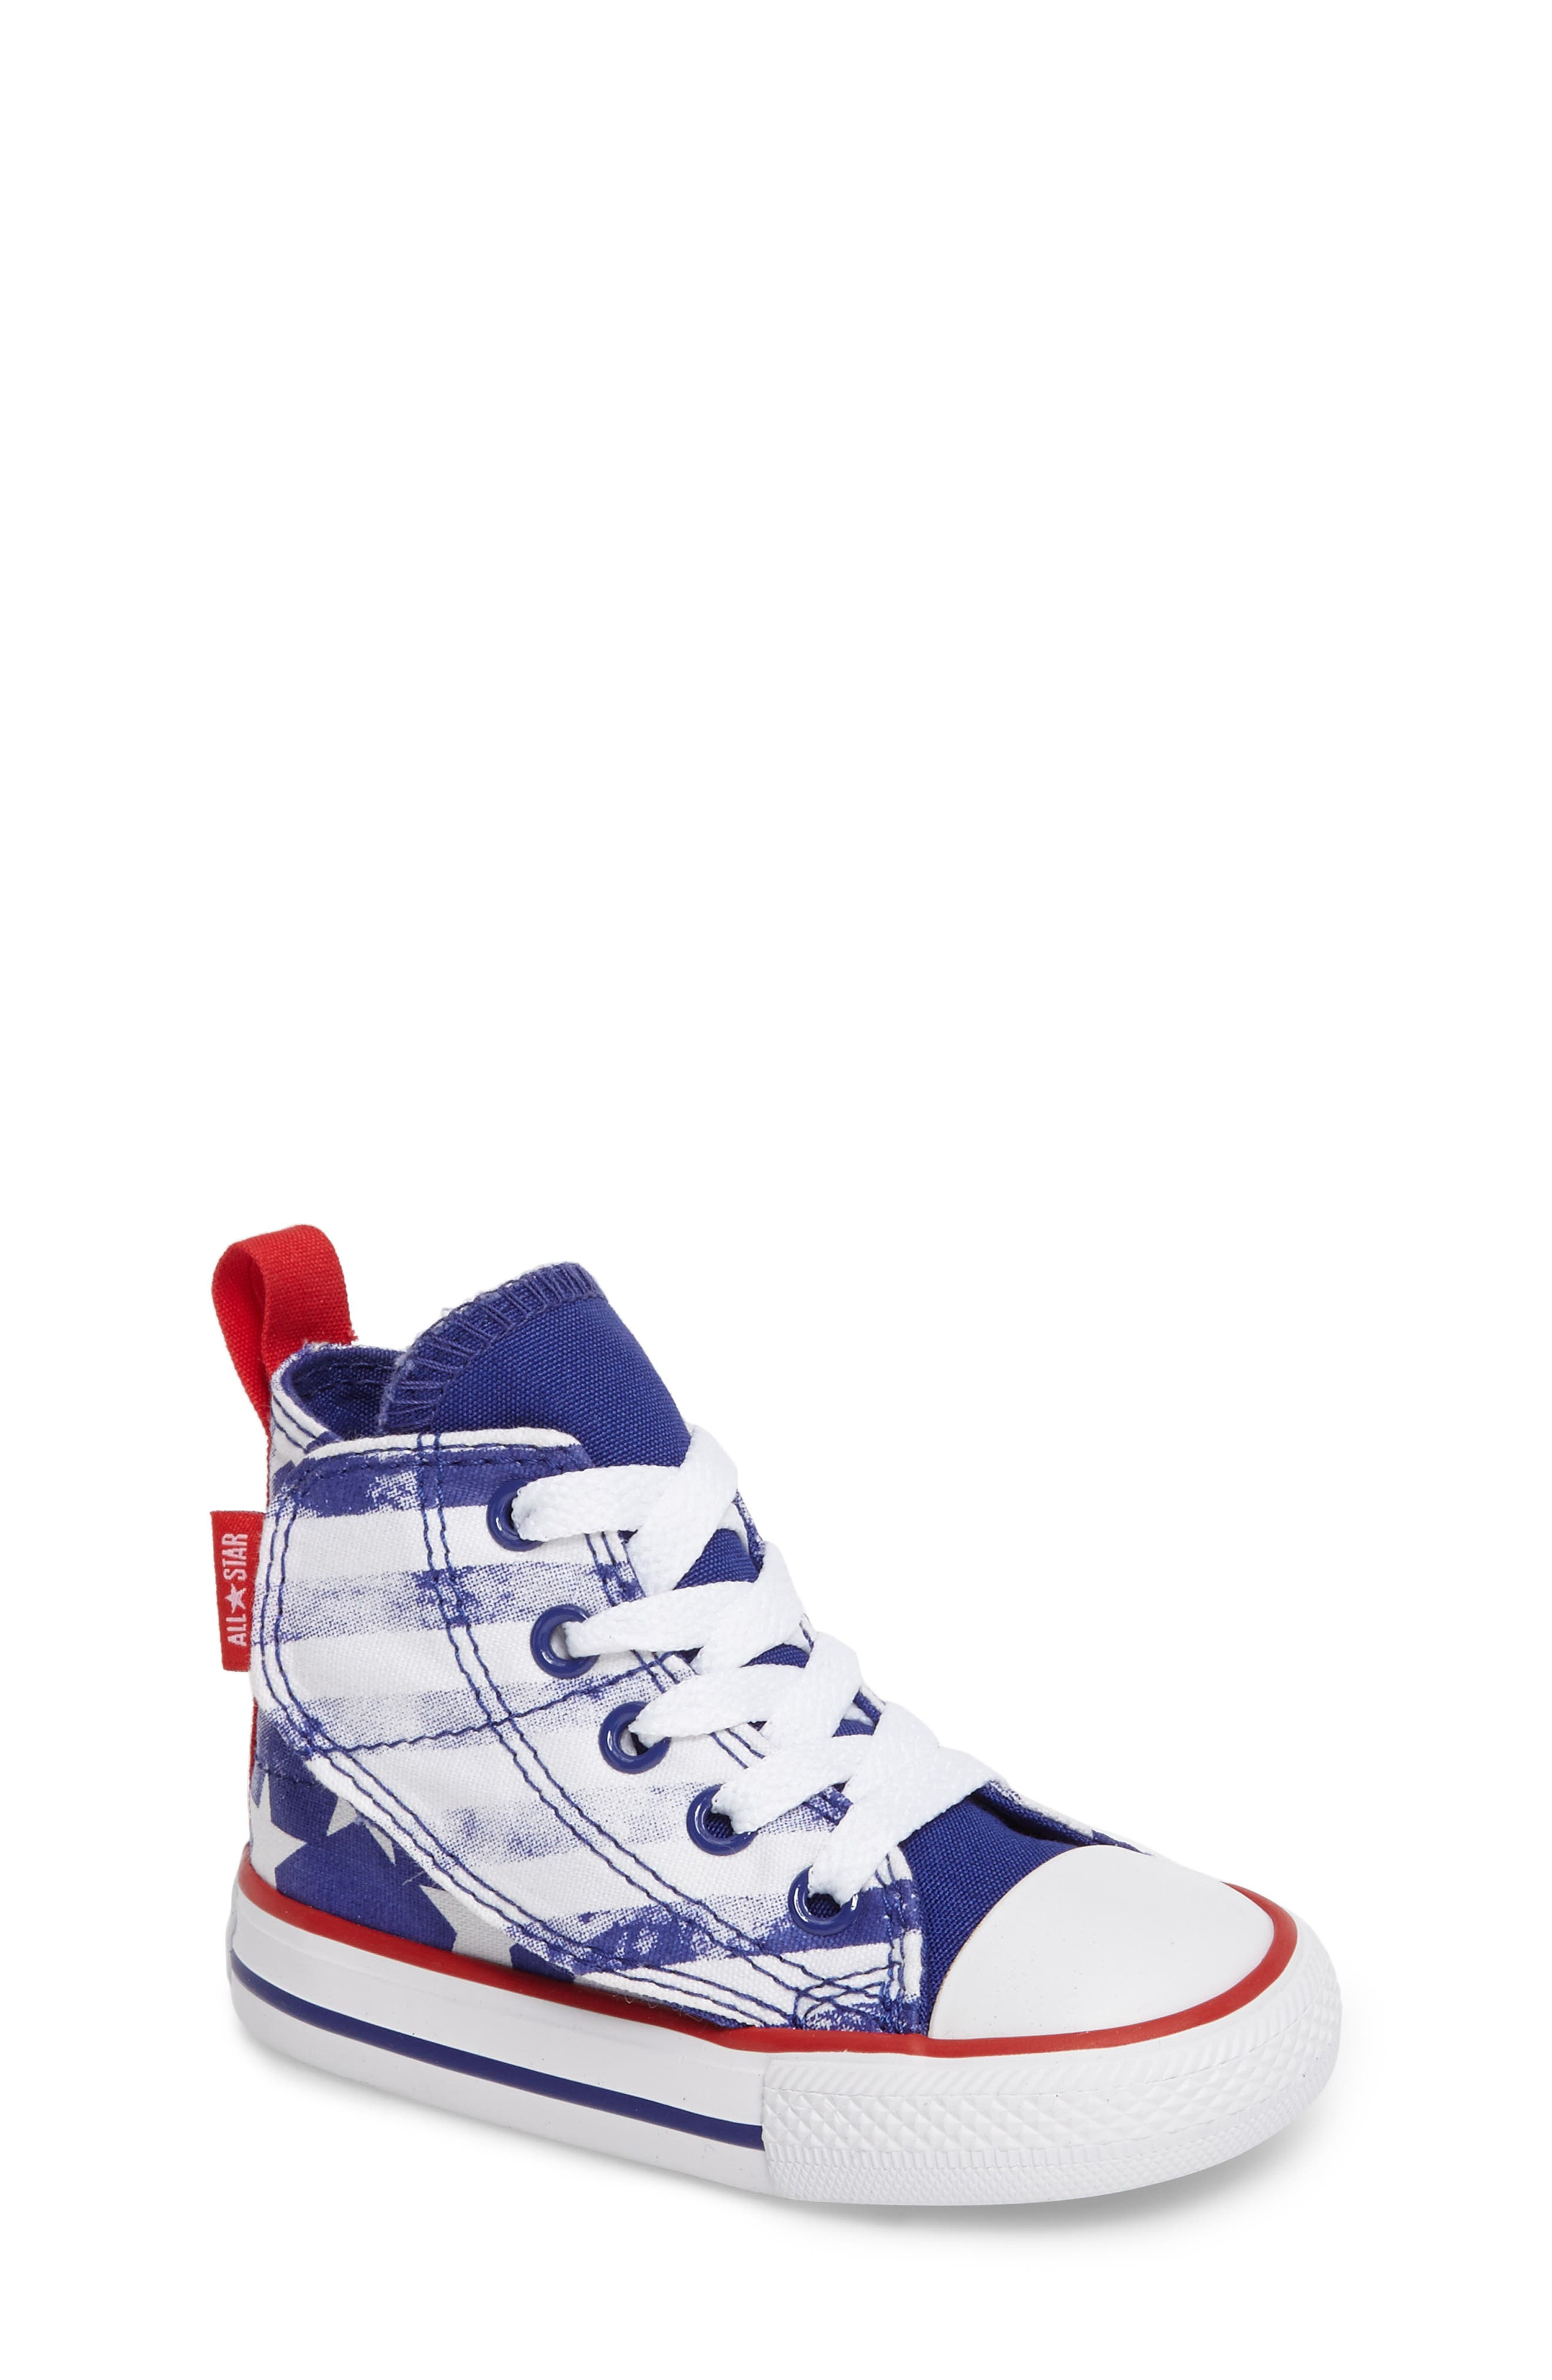 Chuck Taylor<sup>®</sup> All Star<sup>®</sup> 'Simple Step' High Top Sneaker,                             Main thumbnail 1, color,                             400